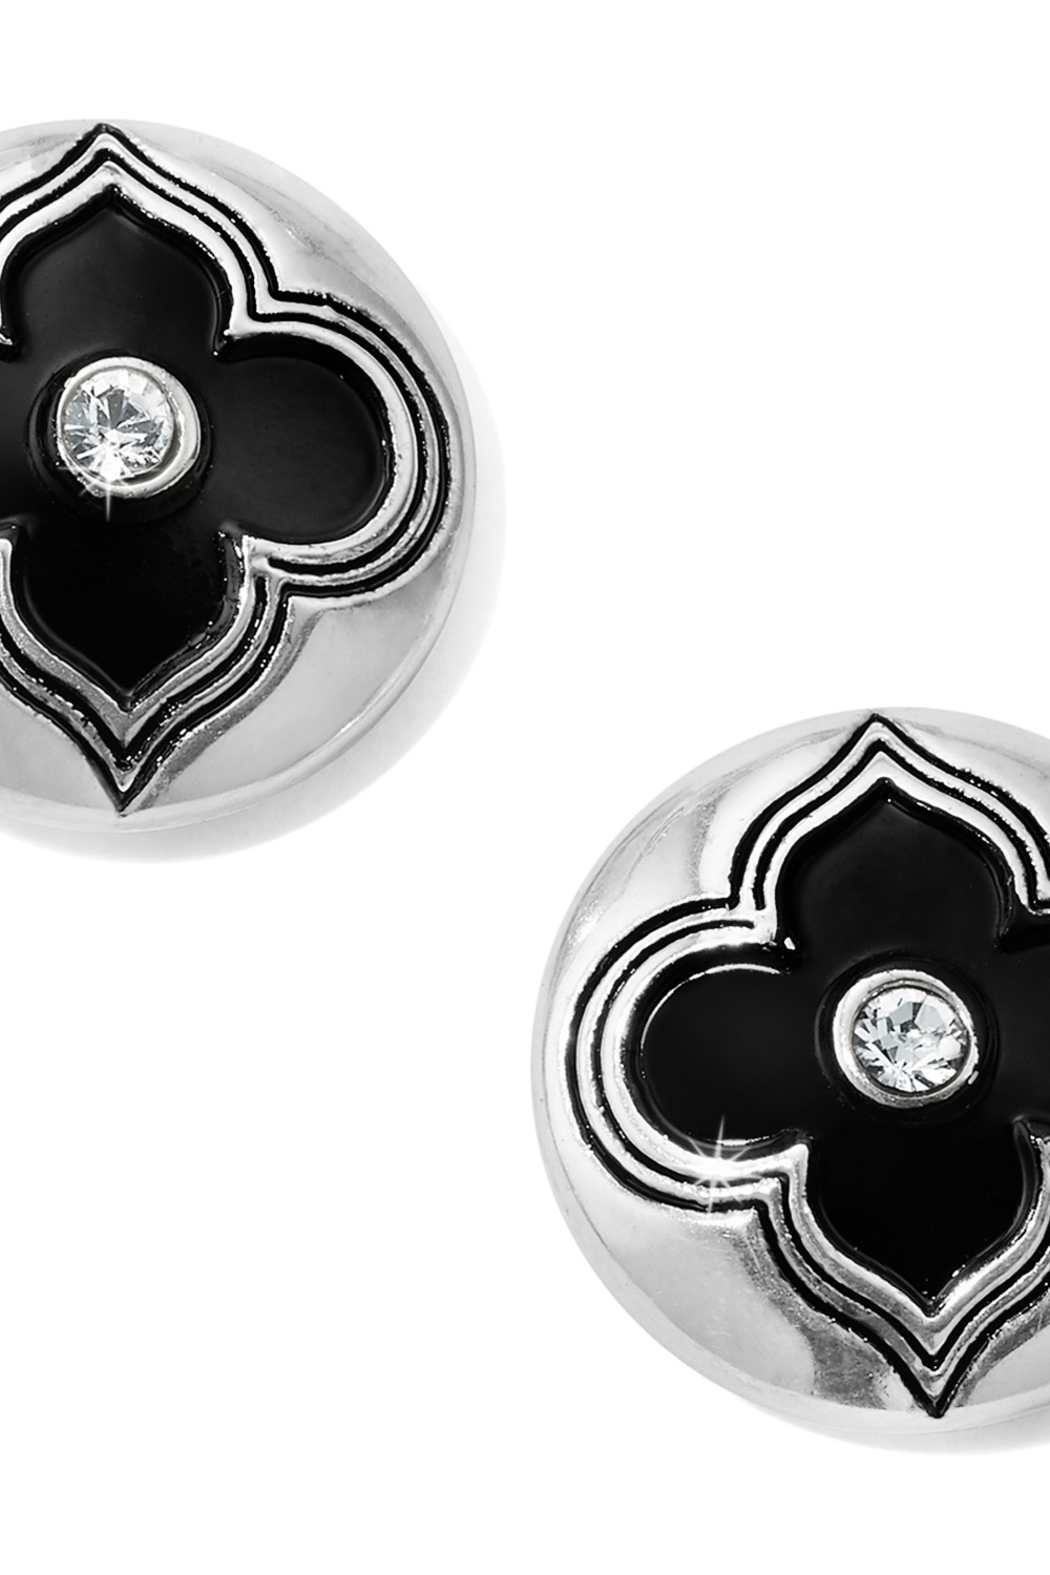 Brighton Toledo Collective Post Earrings JA56600 1134 - Front Cropped Image